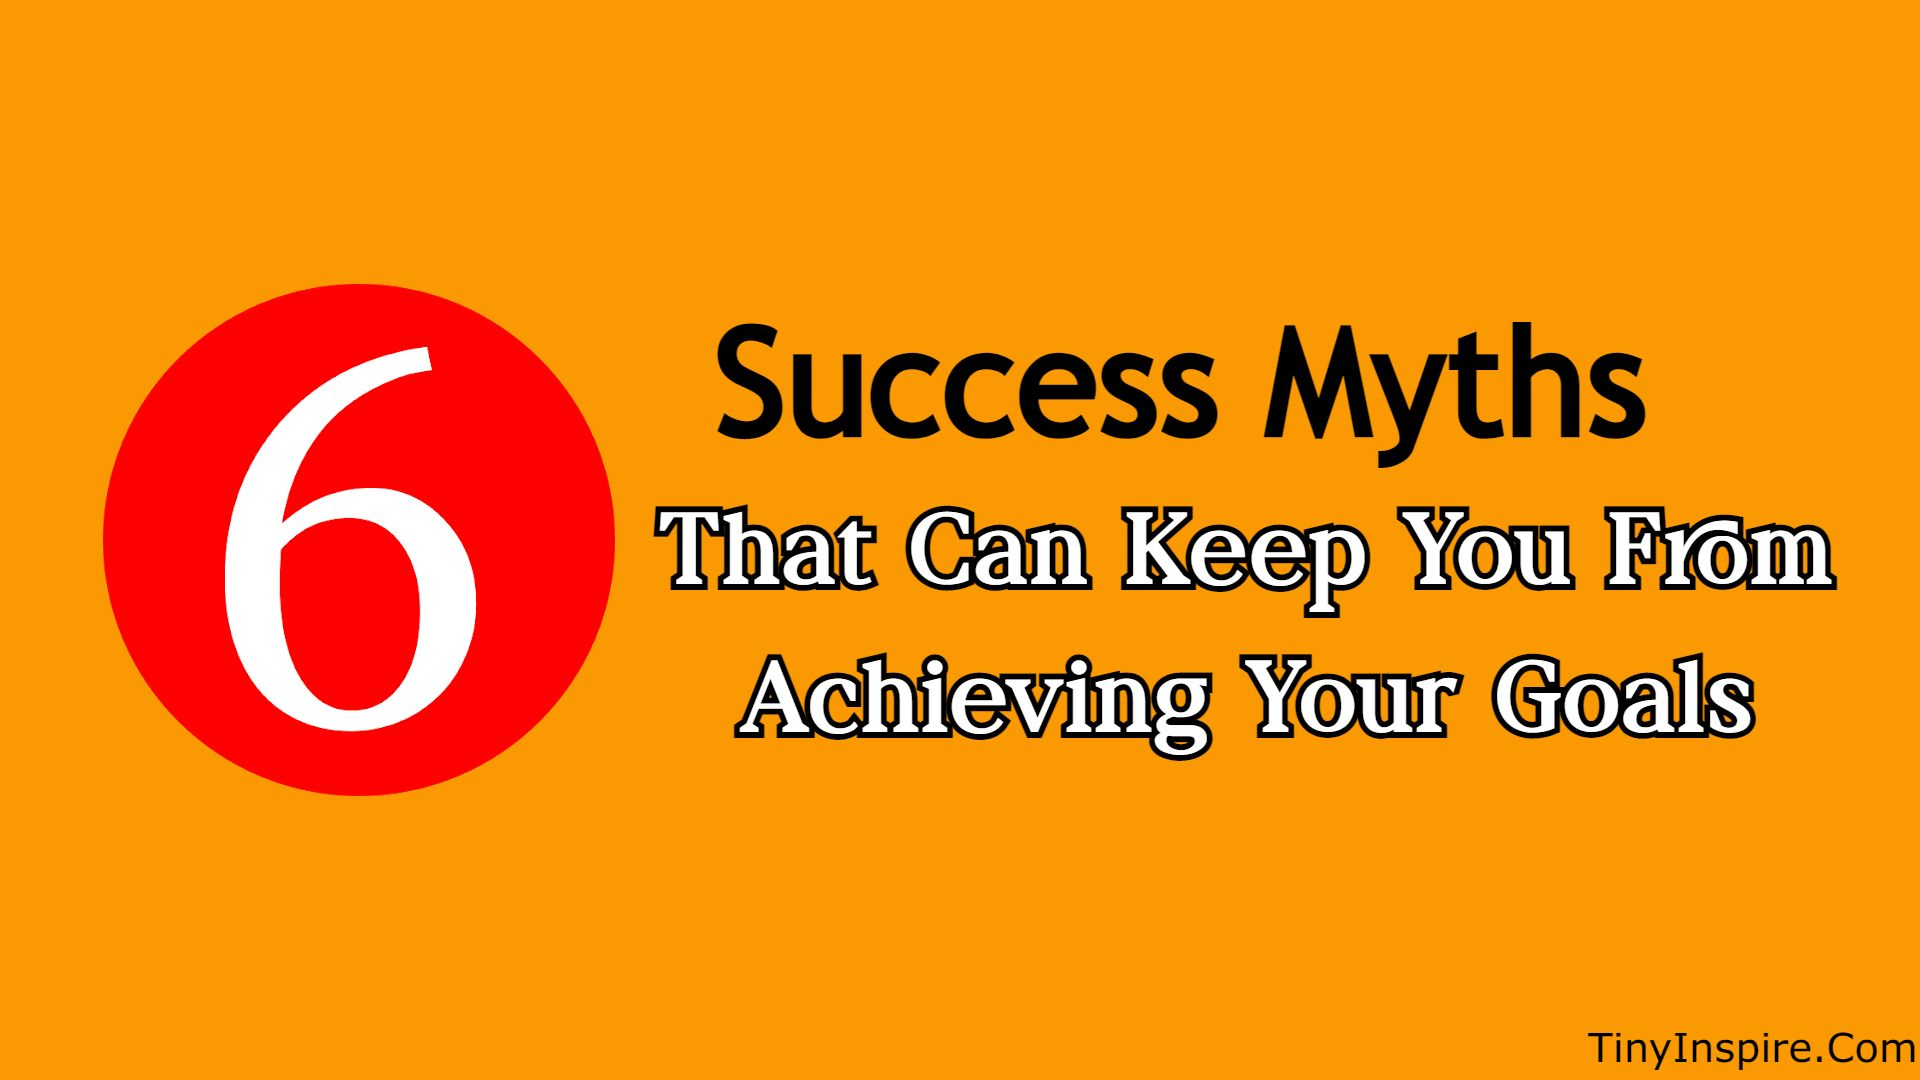 Top 6 Success Myths That Can Keep You From Achieving Your Goals